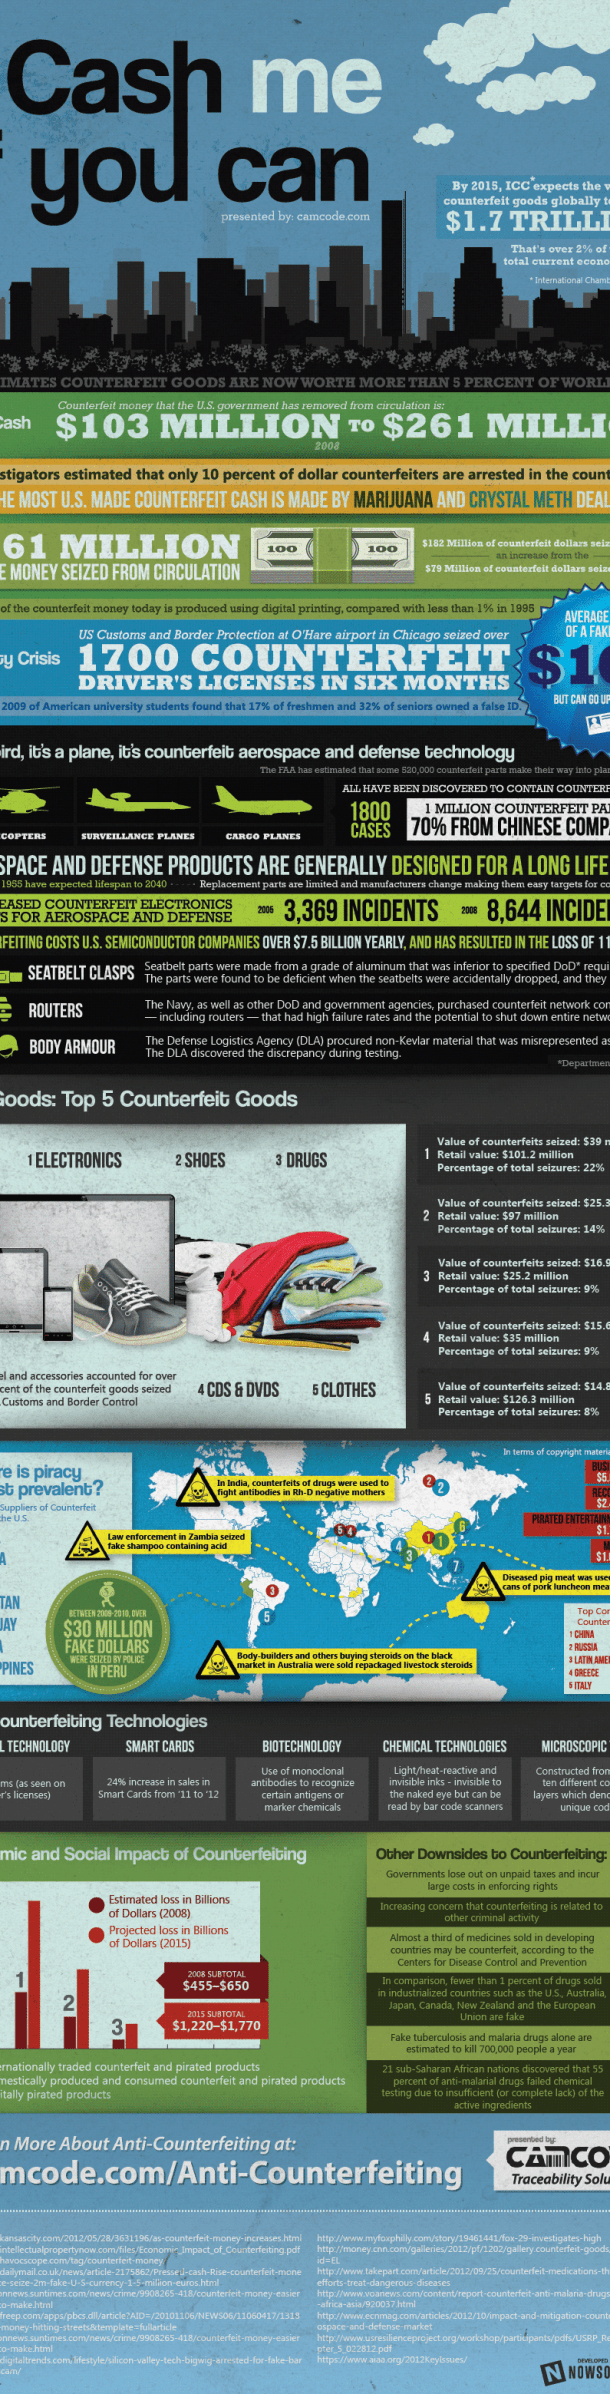 counterfeiting-infographic